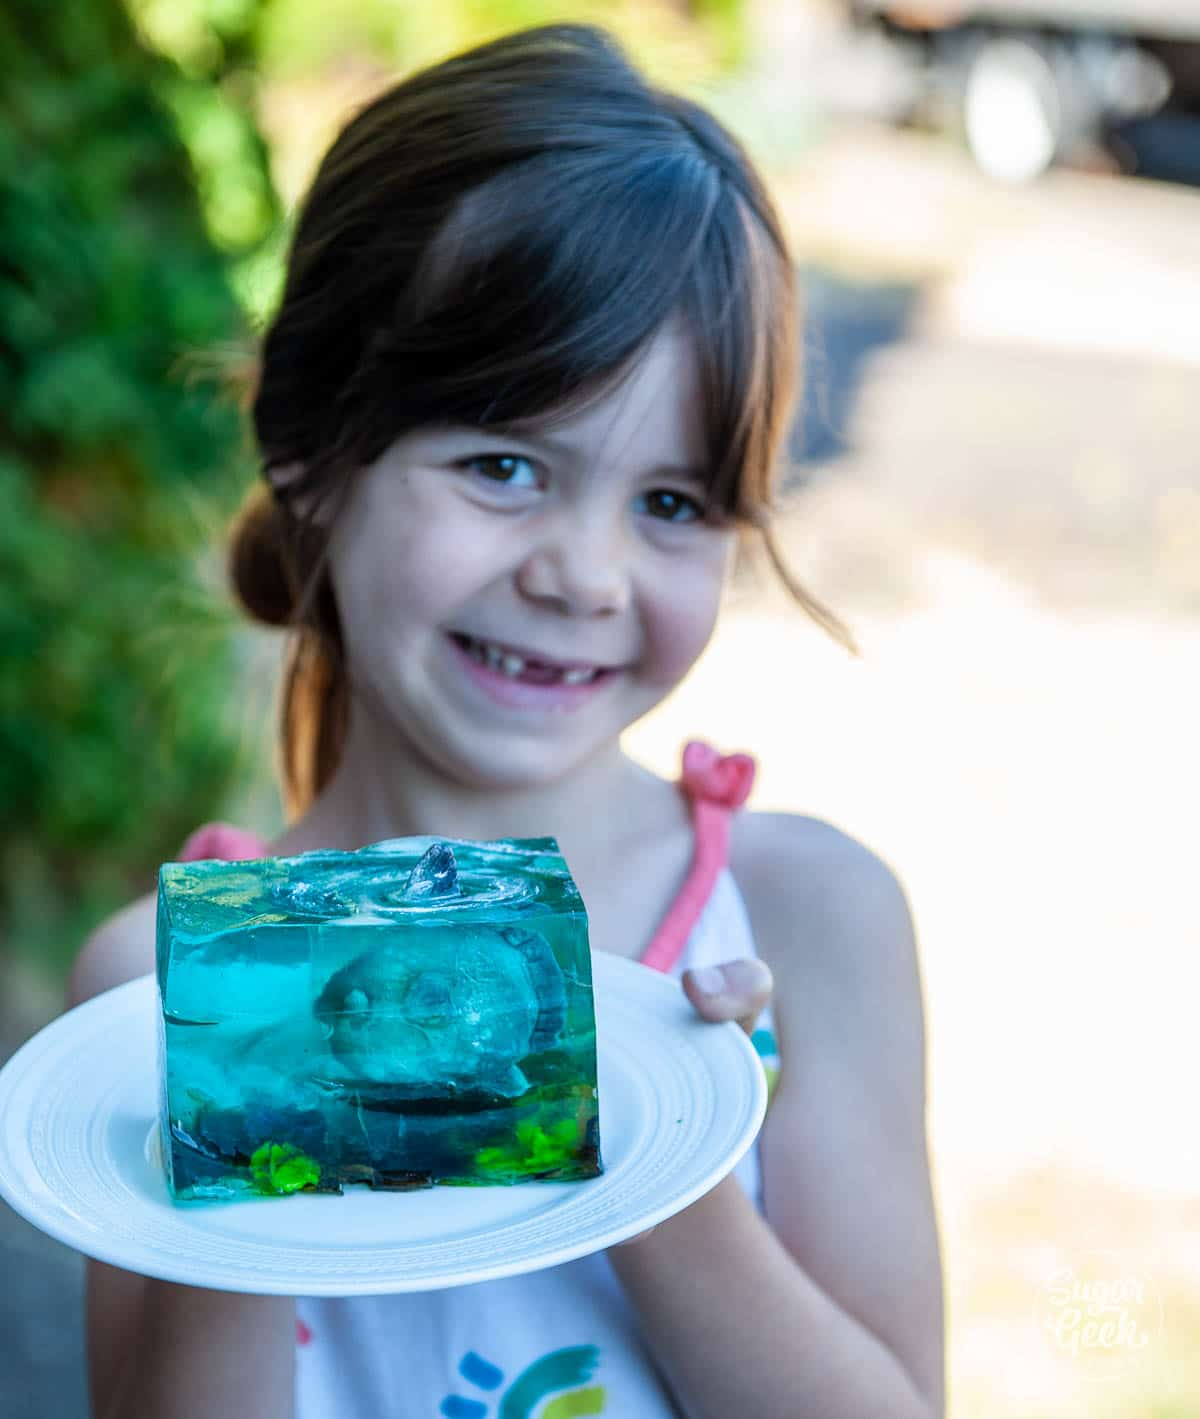 girl holding a slice of jelly cake with modeling chocolate sunfish inside